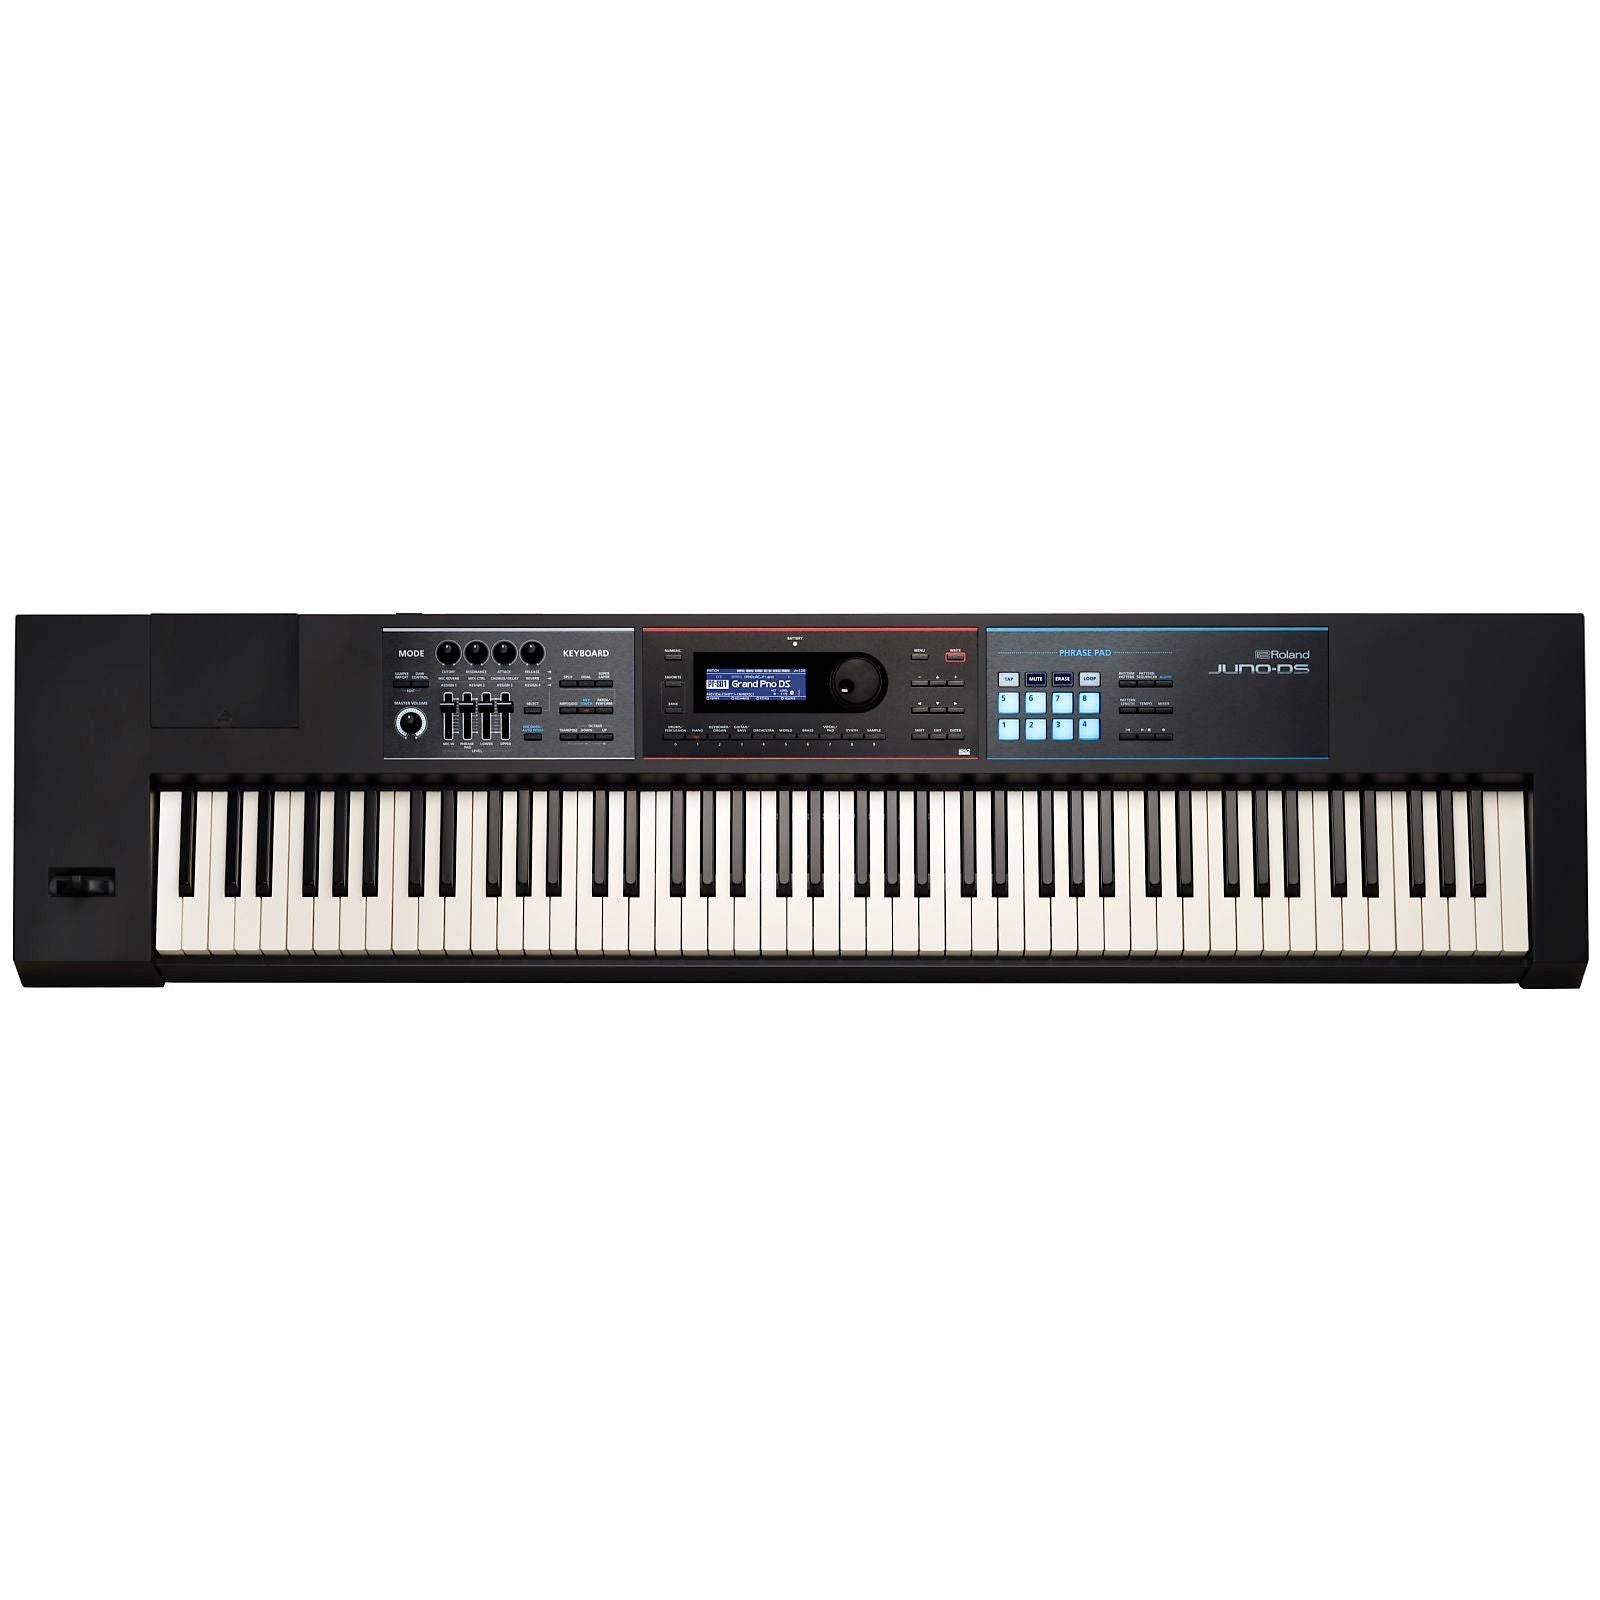 Roland JUNO DS-88 Synthesizer Keyboard, 88-Key